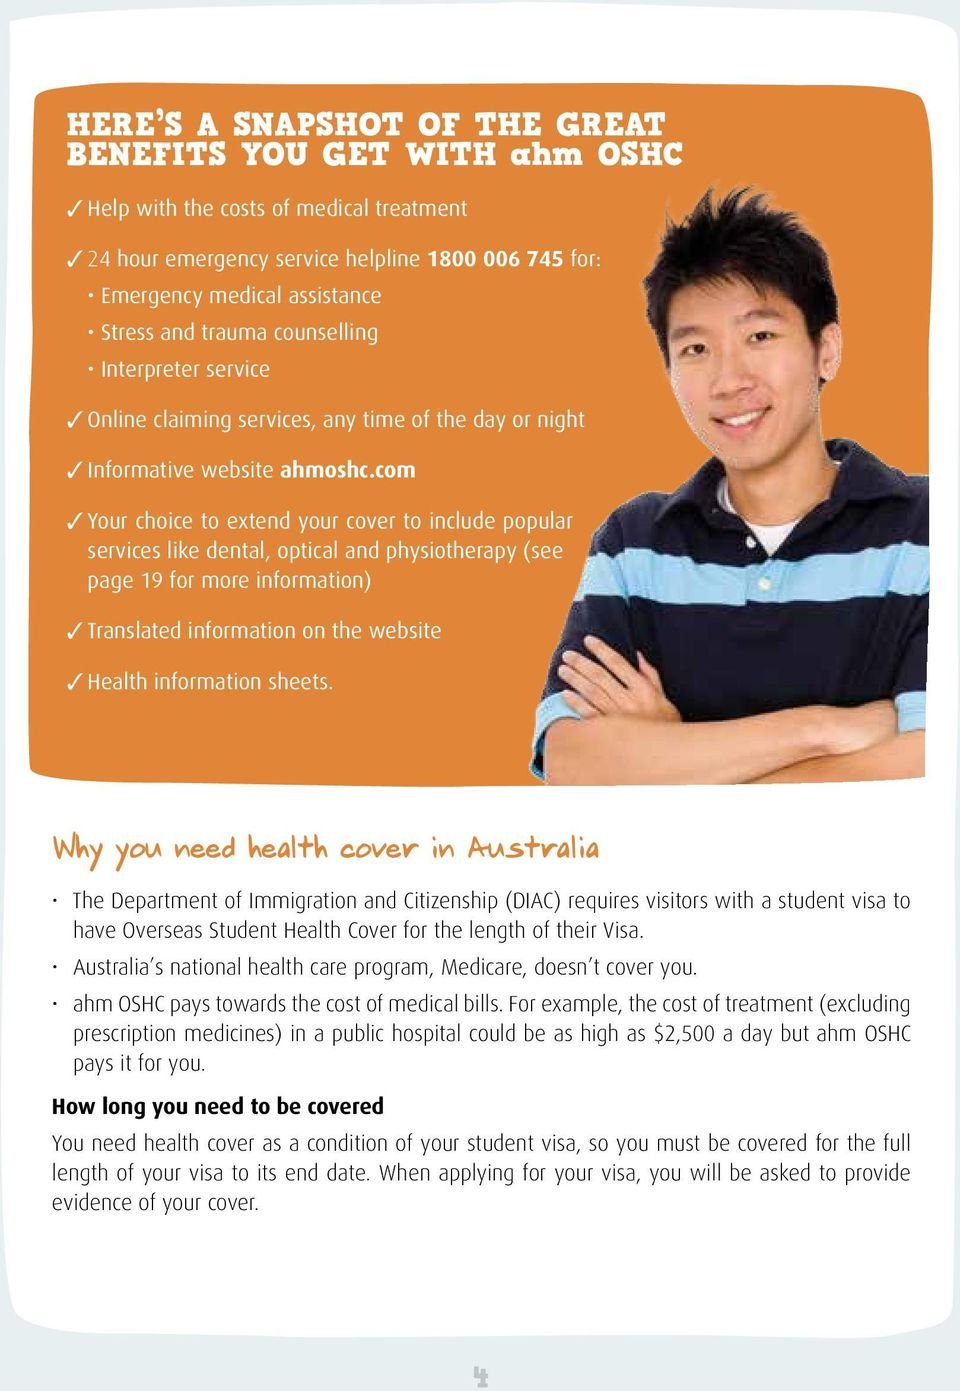 com Your choice to extend your cover to include popular services like dental, optical and physiotherapy (see page 19 for more information) Translated information on the website Health information